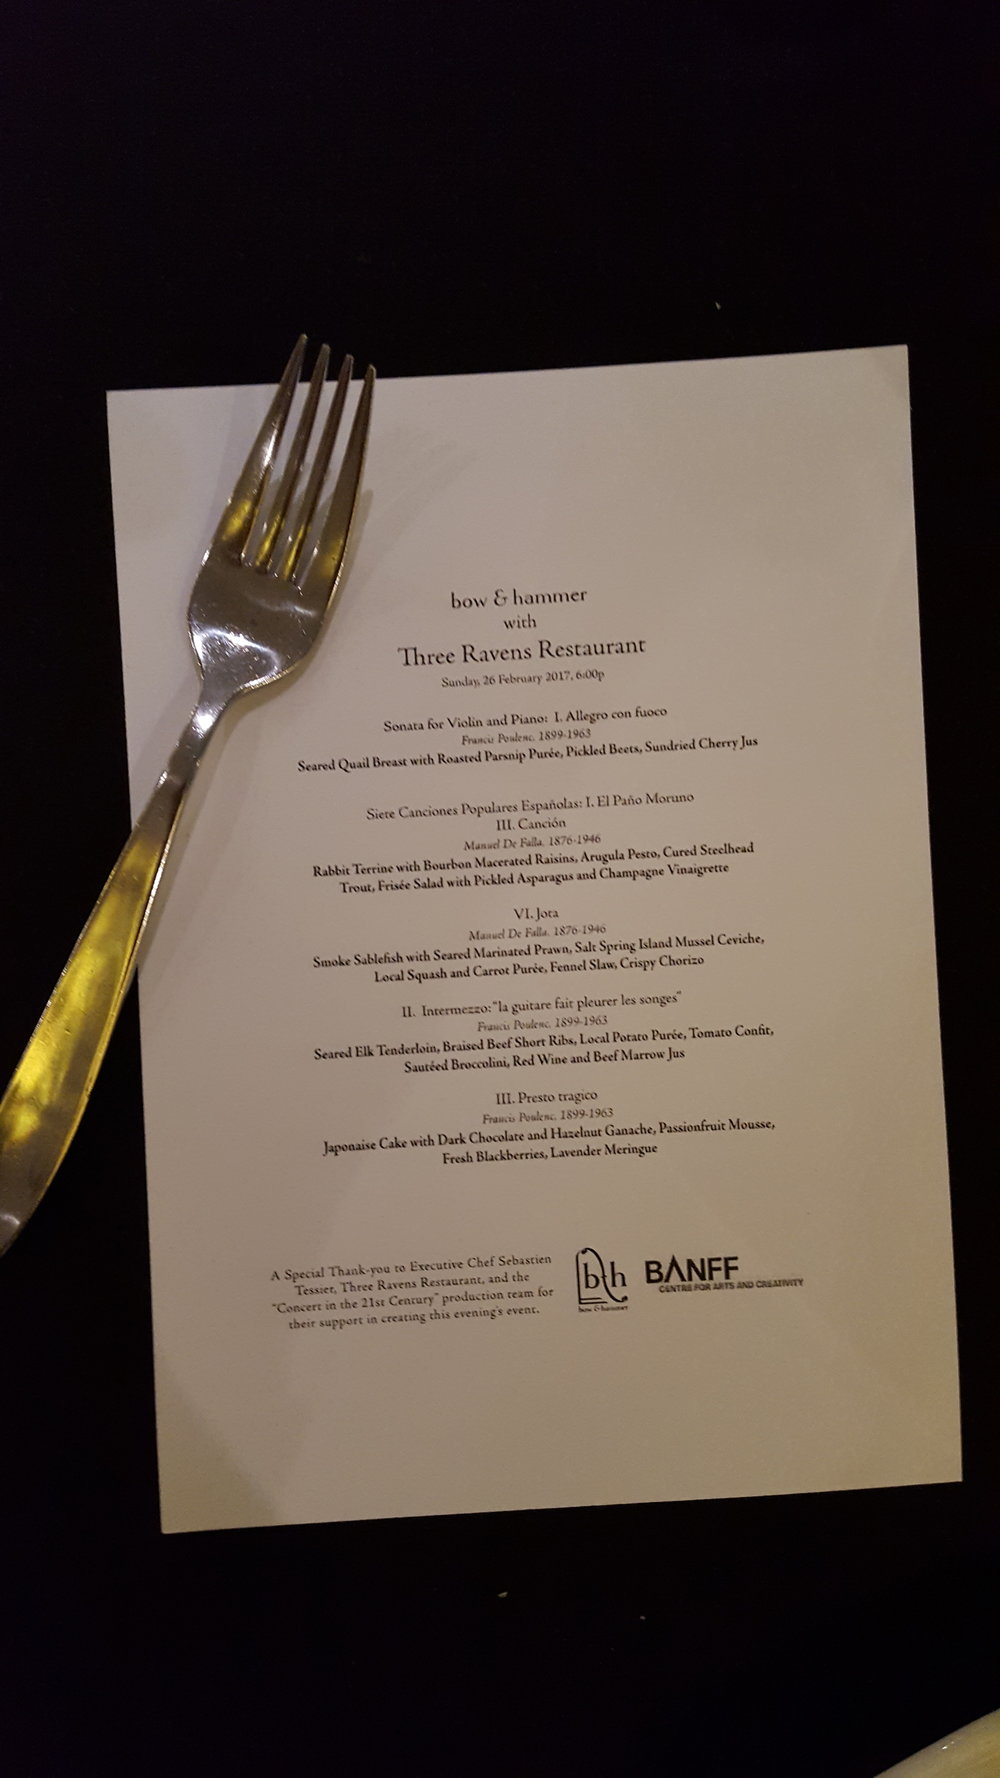 The menu and program for the Bow and Hammer performance